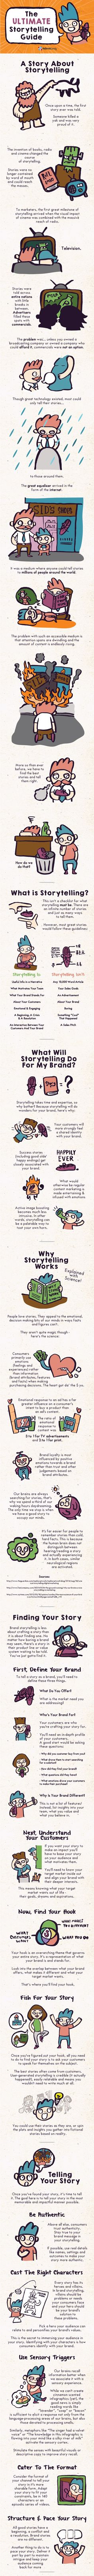 The Ultimate Storytelling Guide Infographic - http://elearninginfographics.com/ultimate-storytelling-guide-infographic/